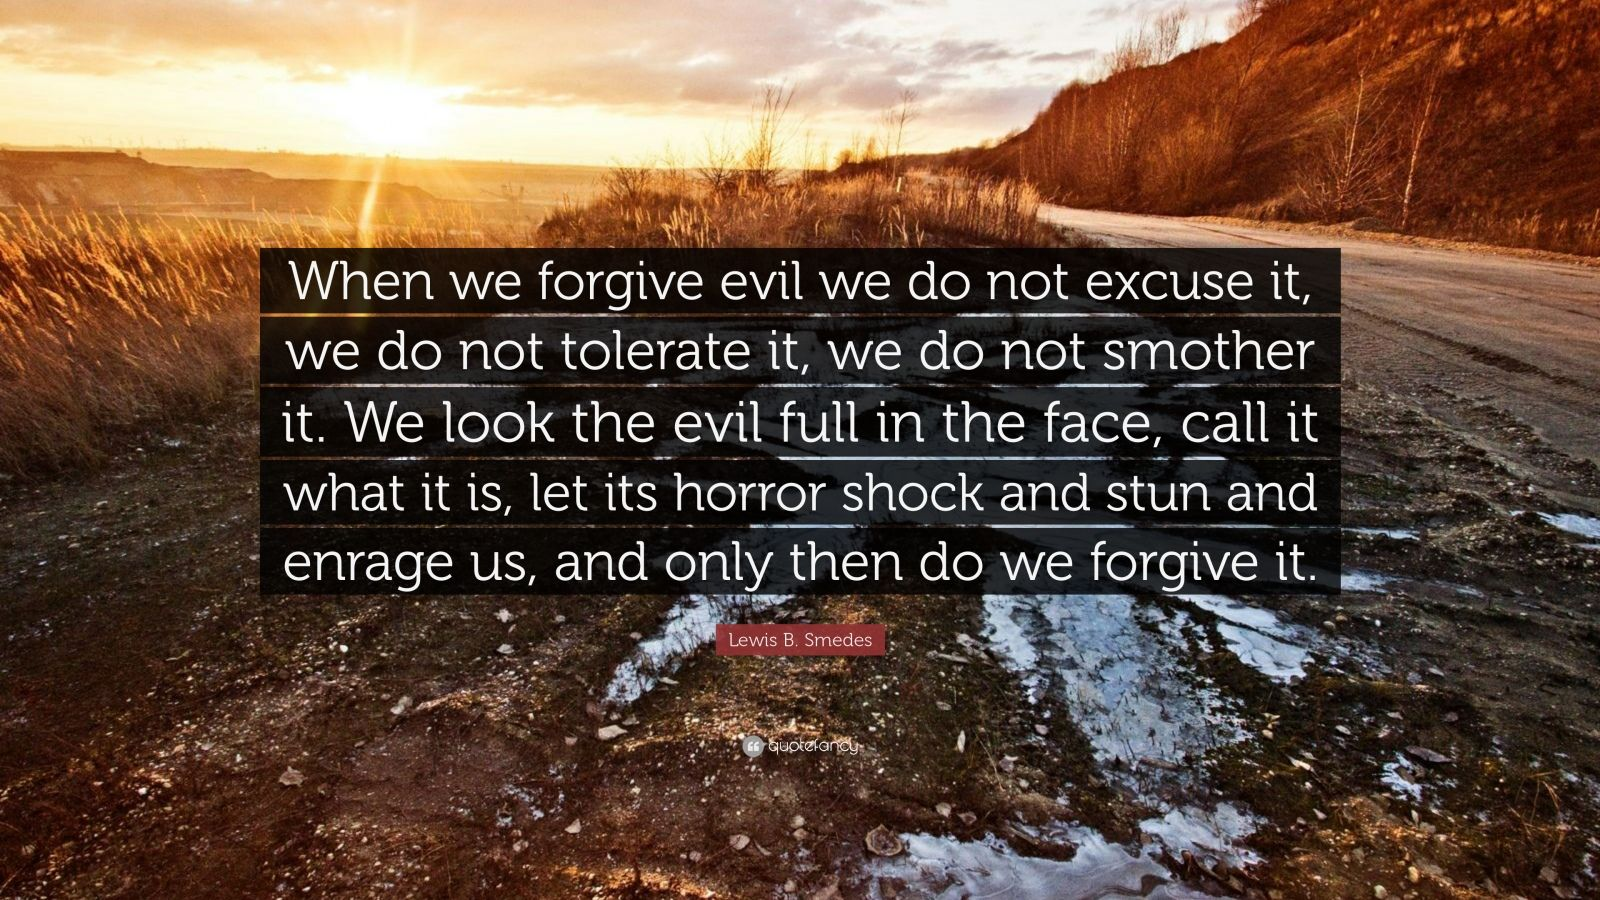 "Lewis B. Smedes Quote: ""When we forgive evil we do not excuse it, we do not tolerate it, we do not smother it. We look the evil full in the face, call it what it is, let its horror shock and stun and enrage us, and only then do we forgive it."""